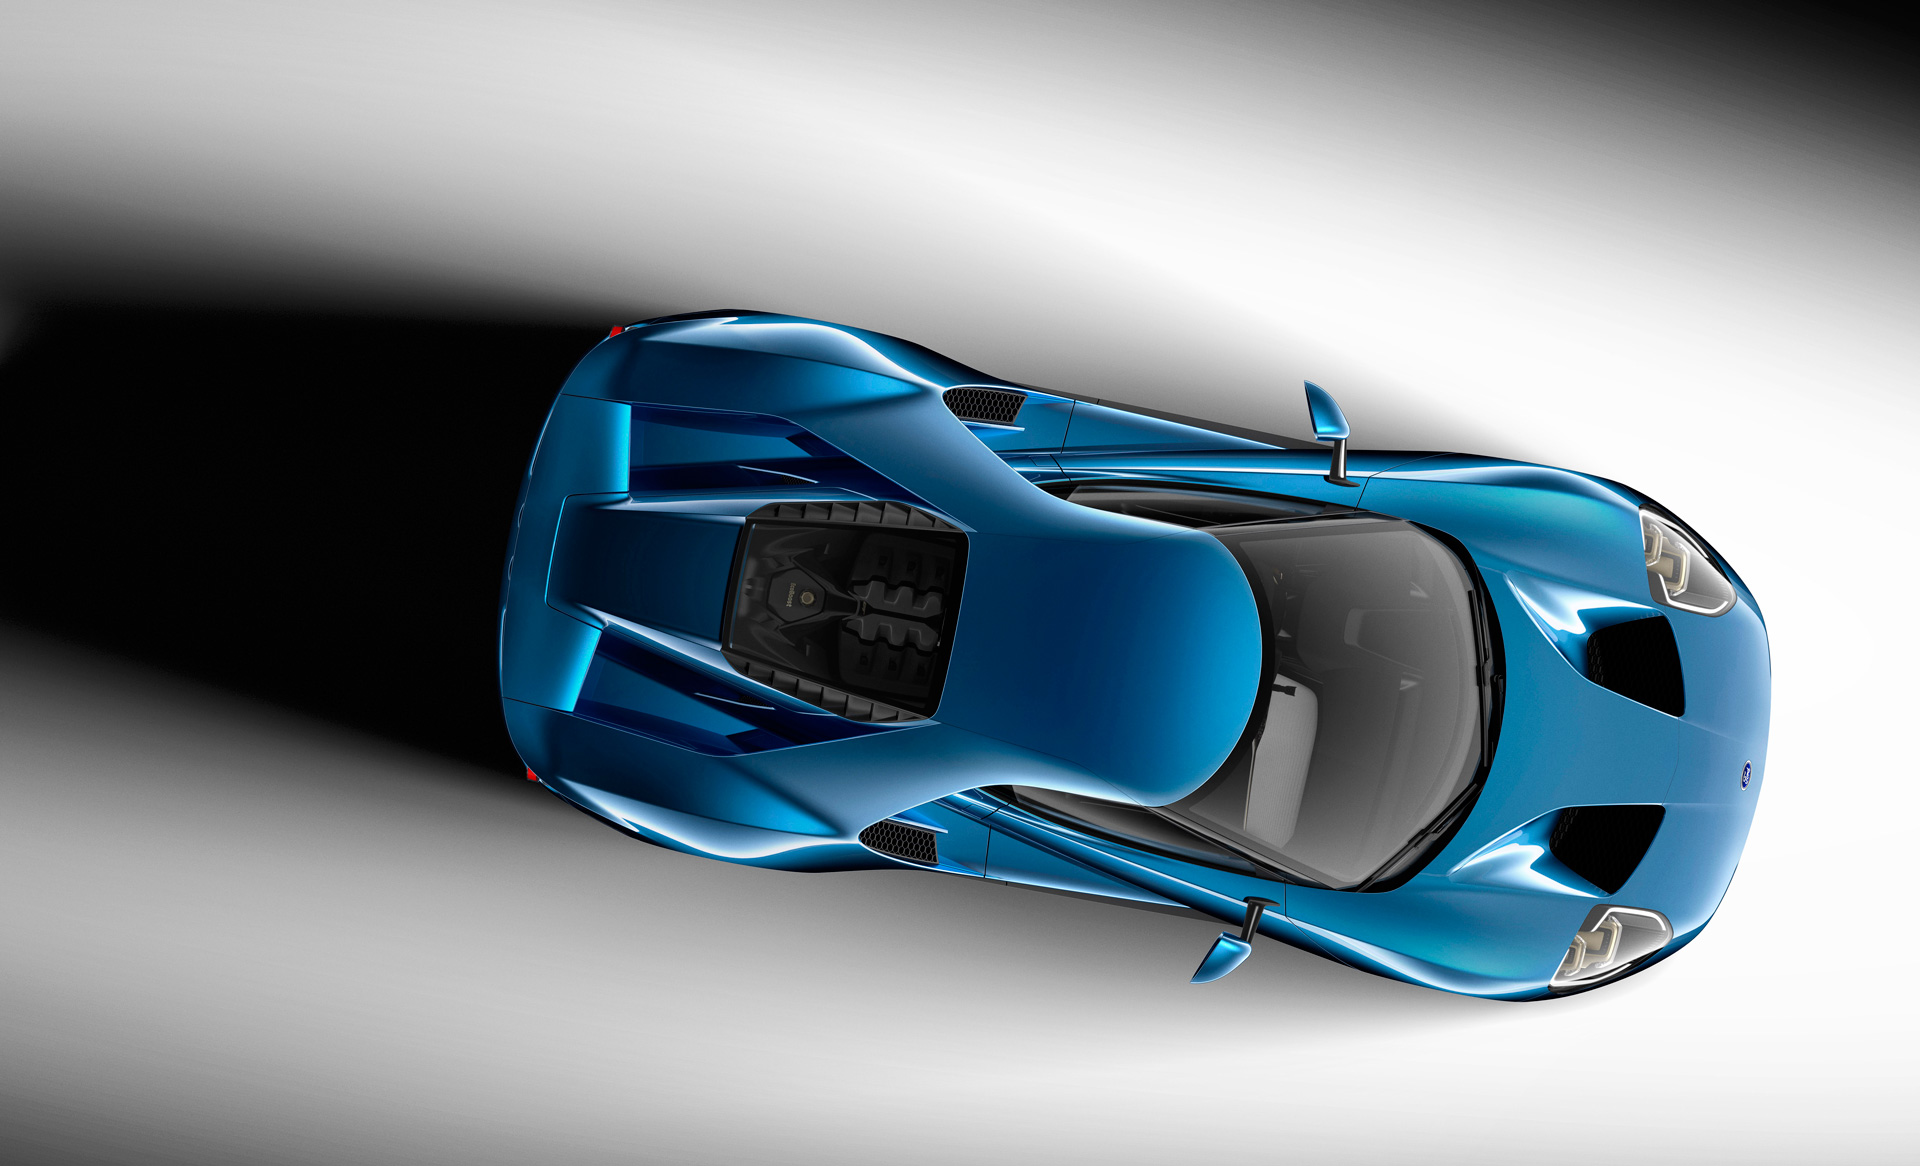 2016 All-New Ford GT - extérieur - Ford